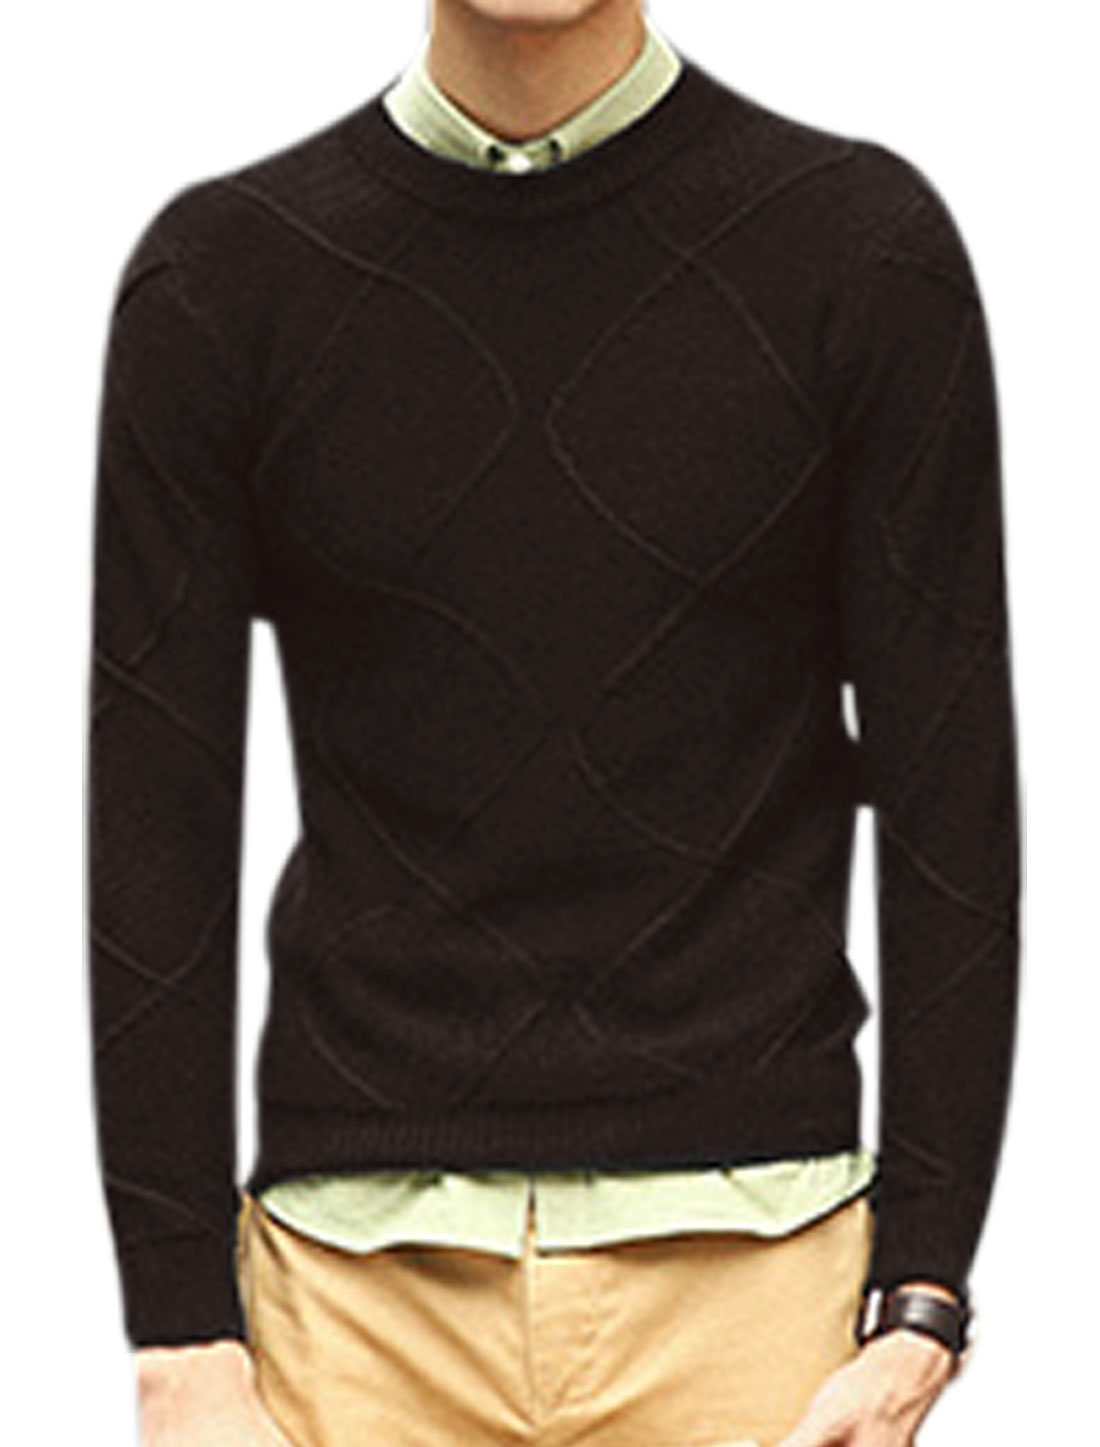 Men Crew Neck Argyle Design Ribbed Trim See Through Casual Sweater Coffee M